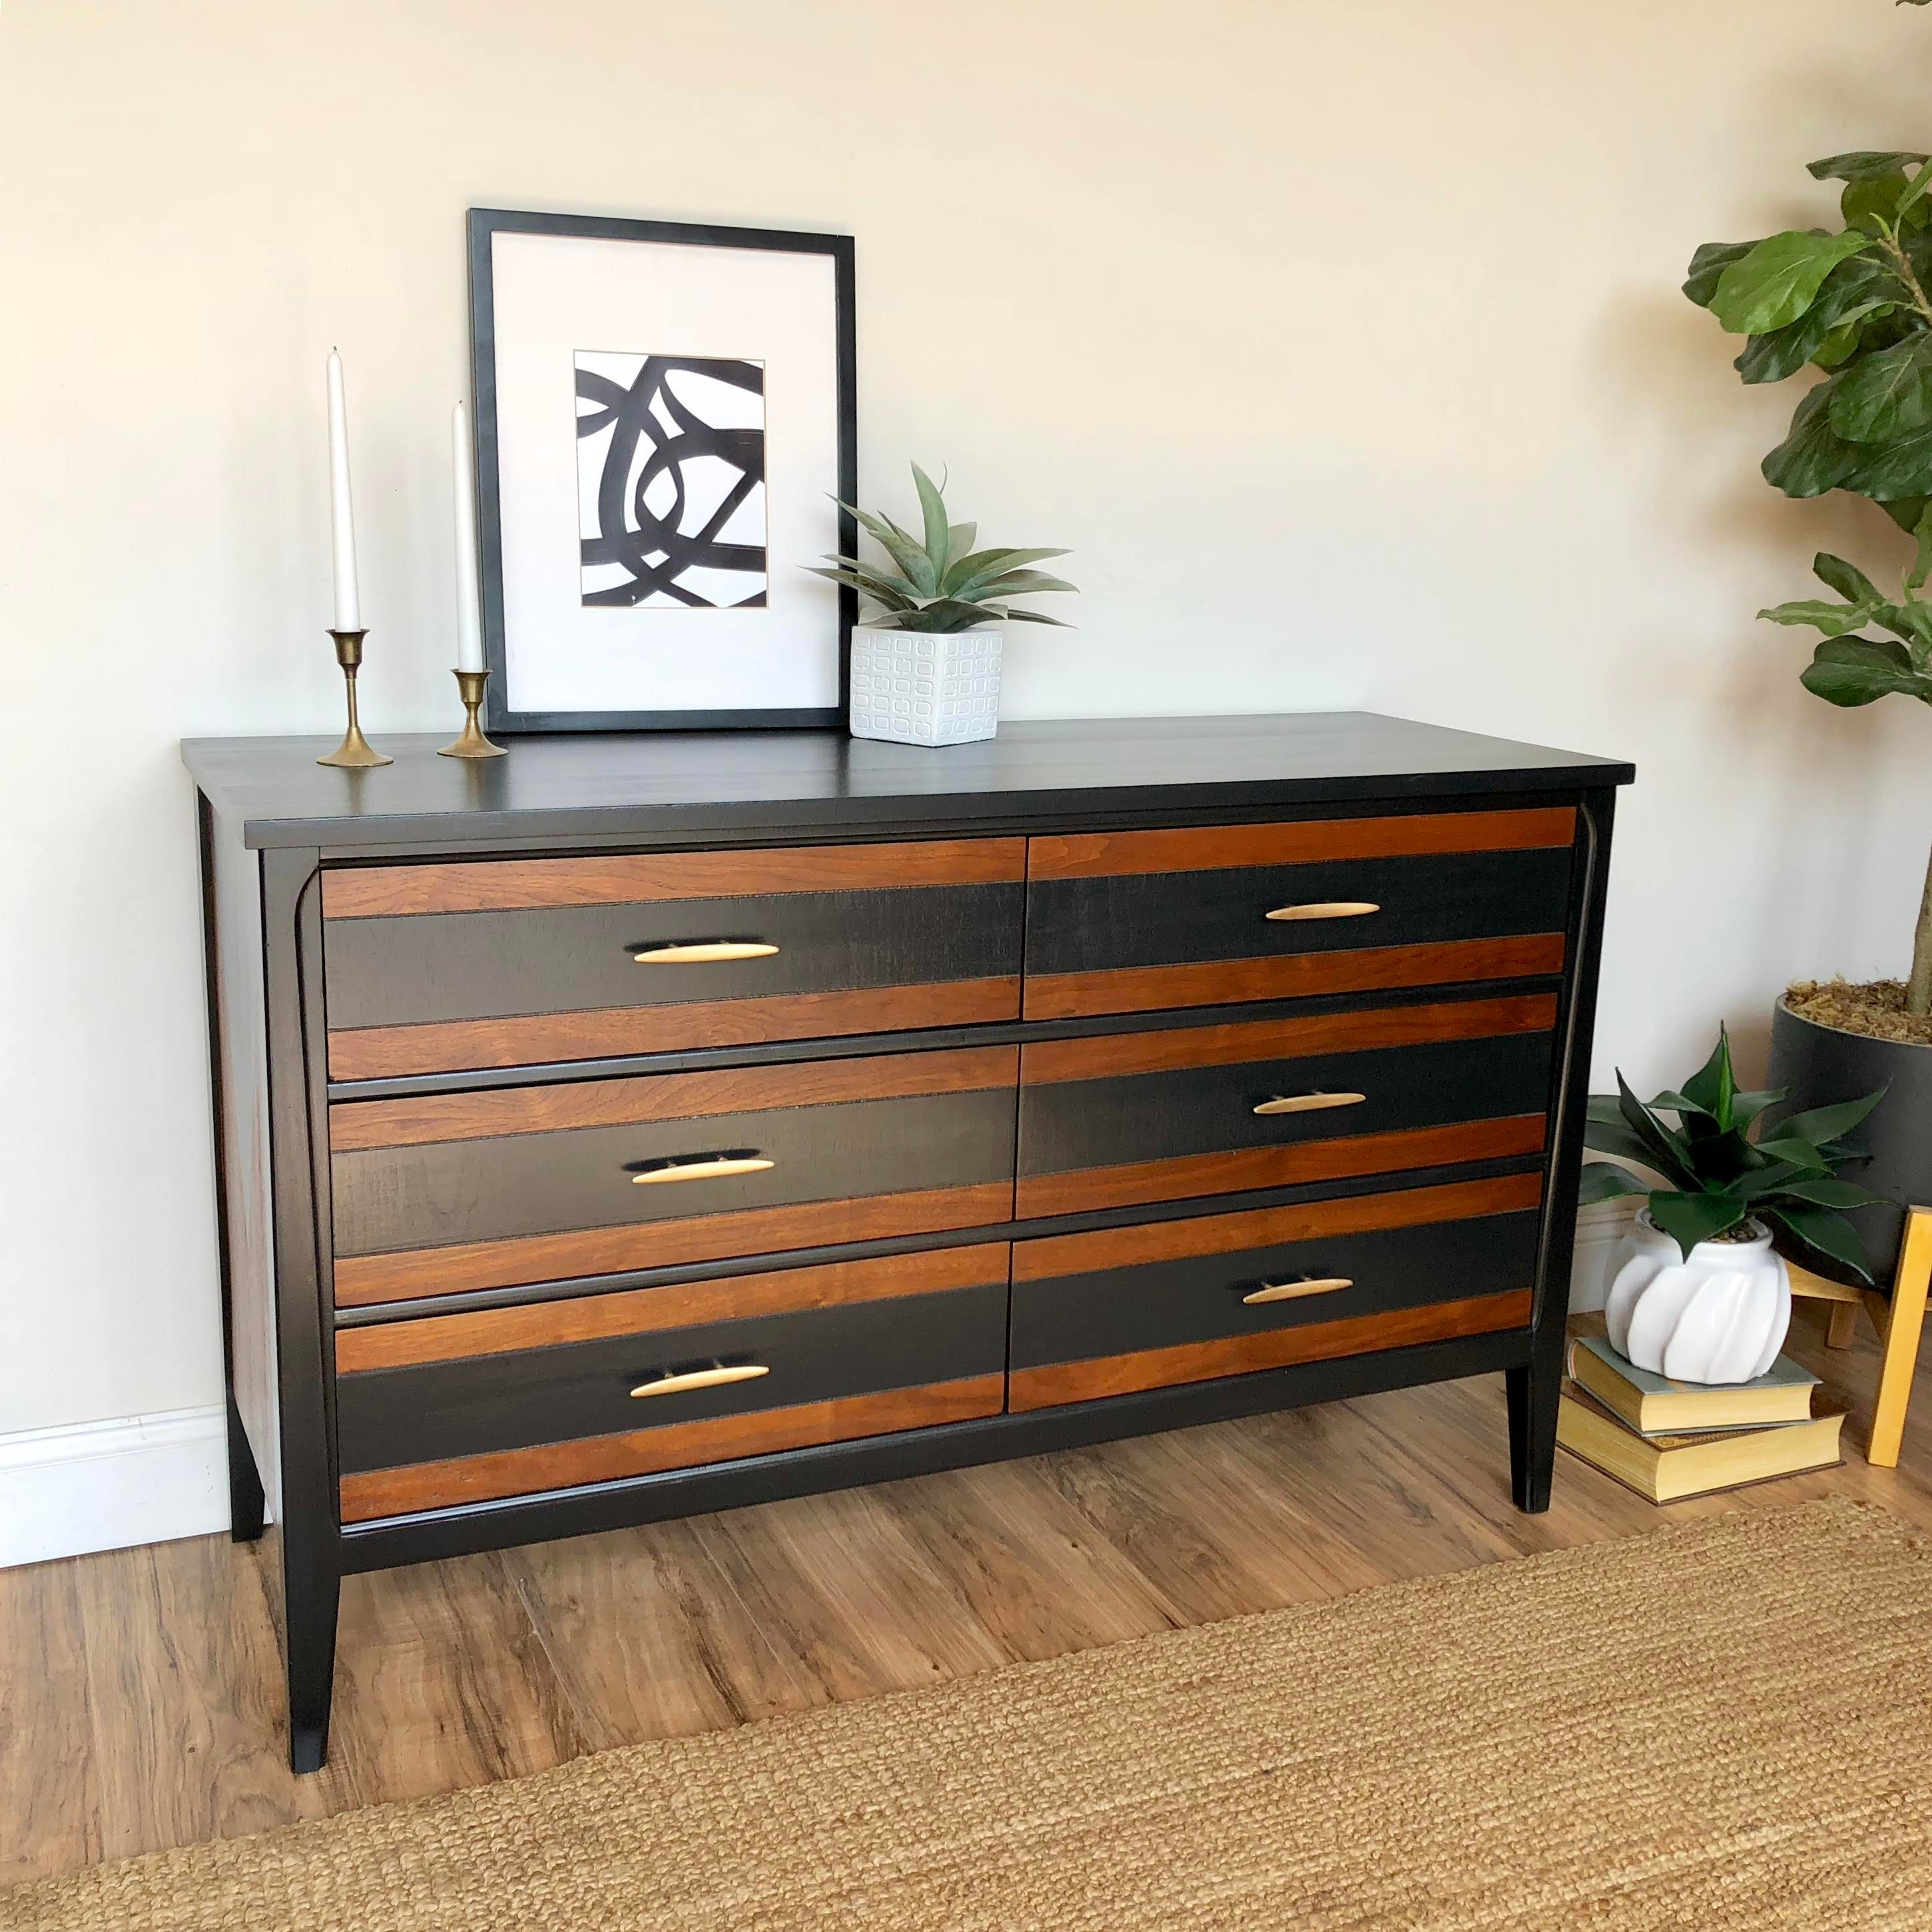 furniture gold world beautiful mirrored shape enchanting of black bedroom dresser and image line dressers unsurpassed modern market storage chests